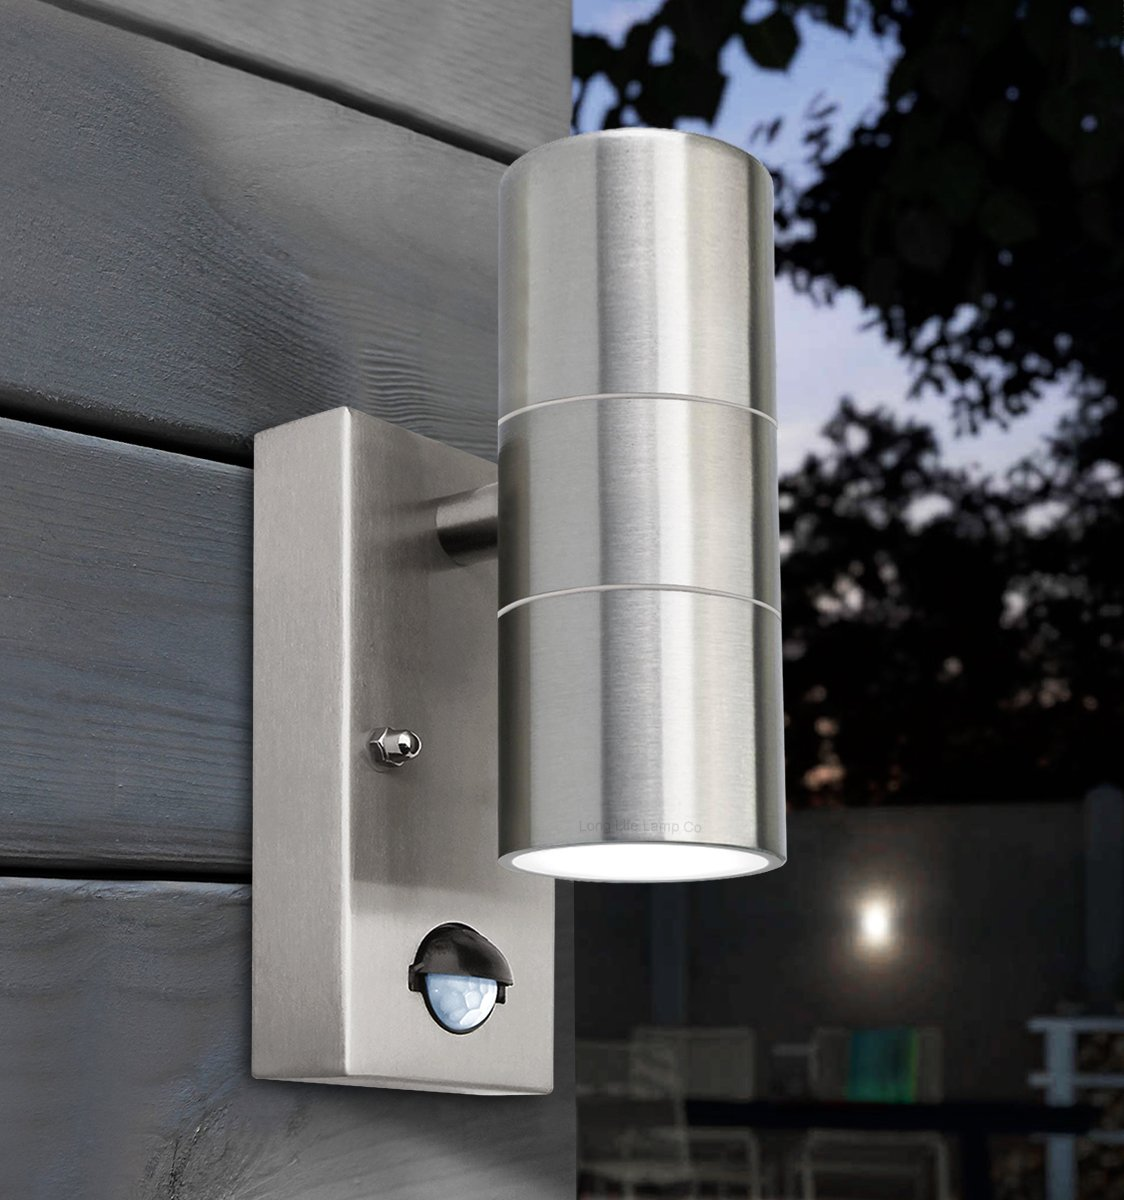 Stainless Steel Outside Wall Lights With Pir : PIR Stainless Steel Up Down Outdoor Wall Light With Movement Sensor ZLC0204 IP65 eBay